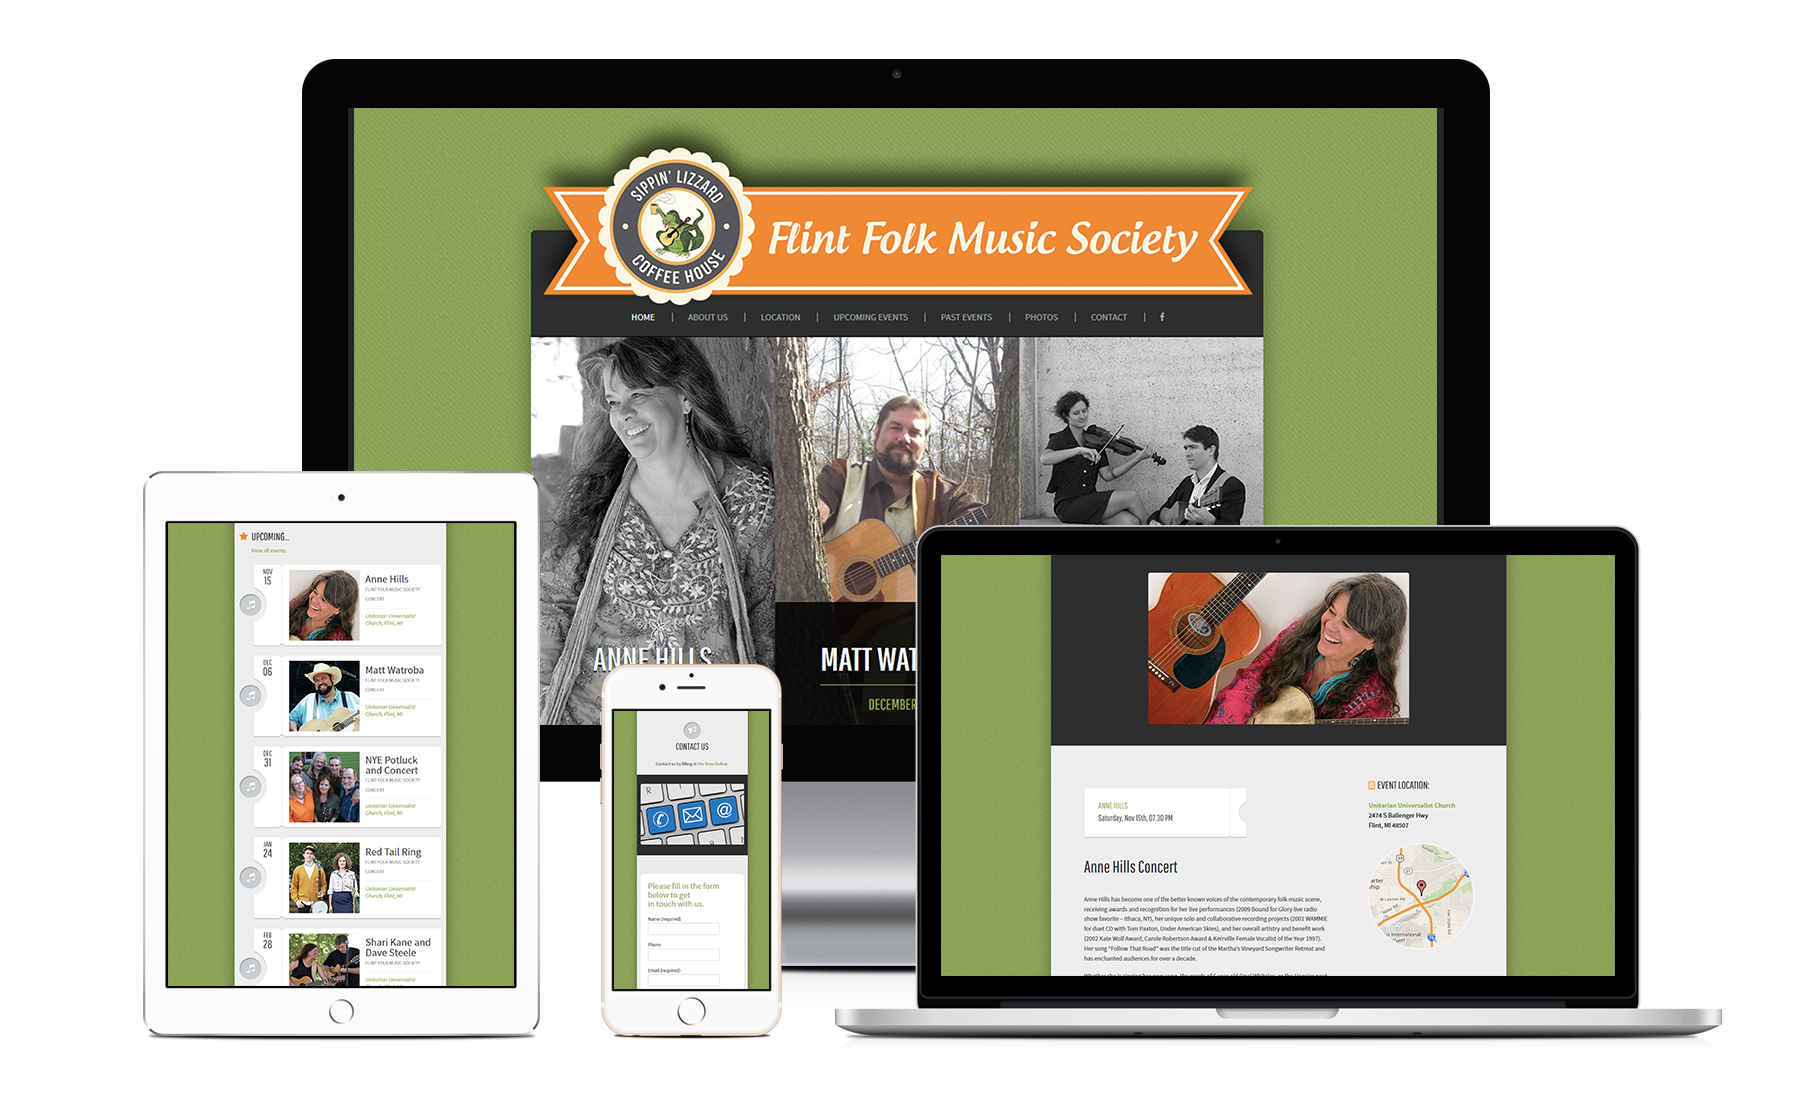 Flint Folk Music Society - Zoda Design